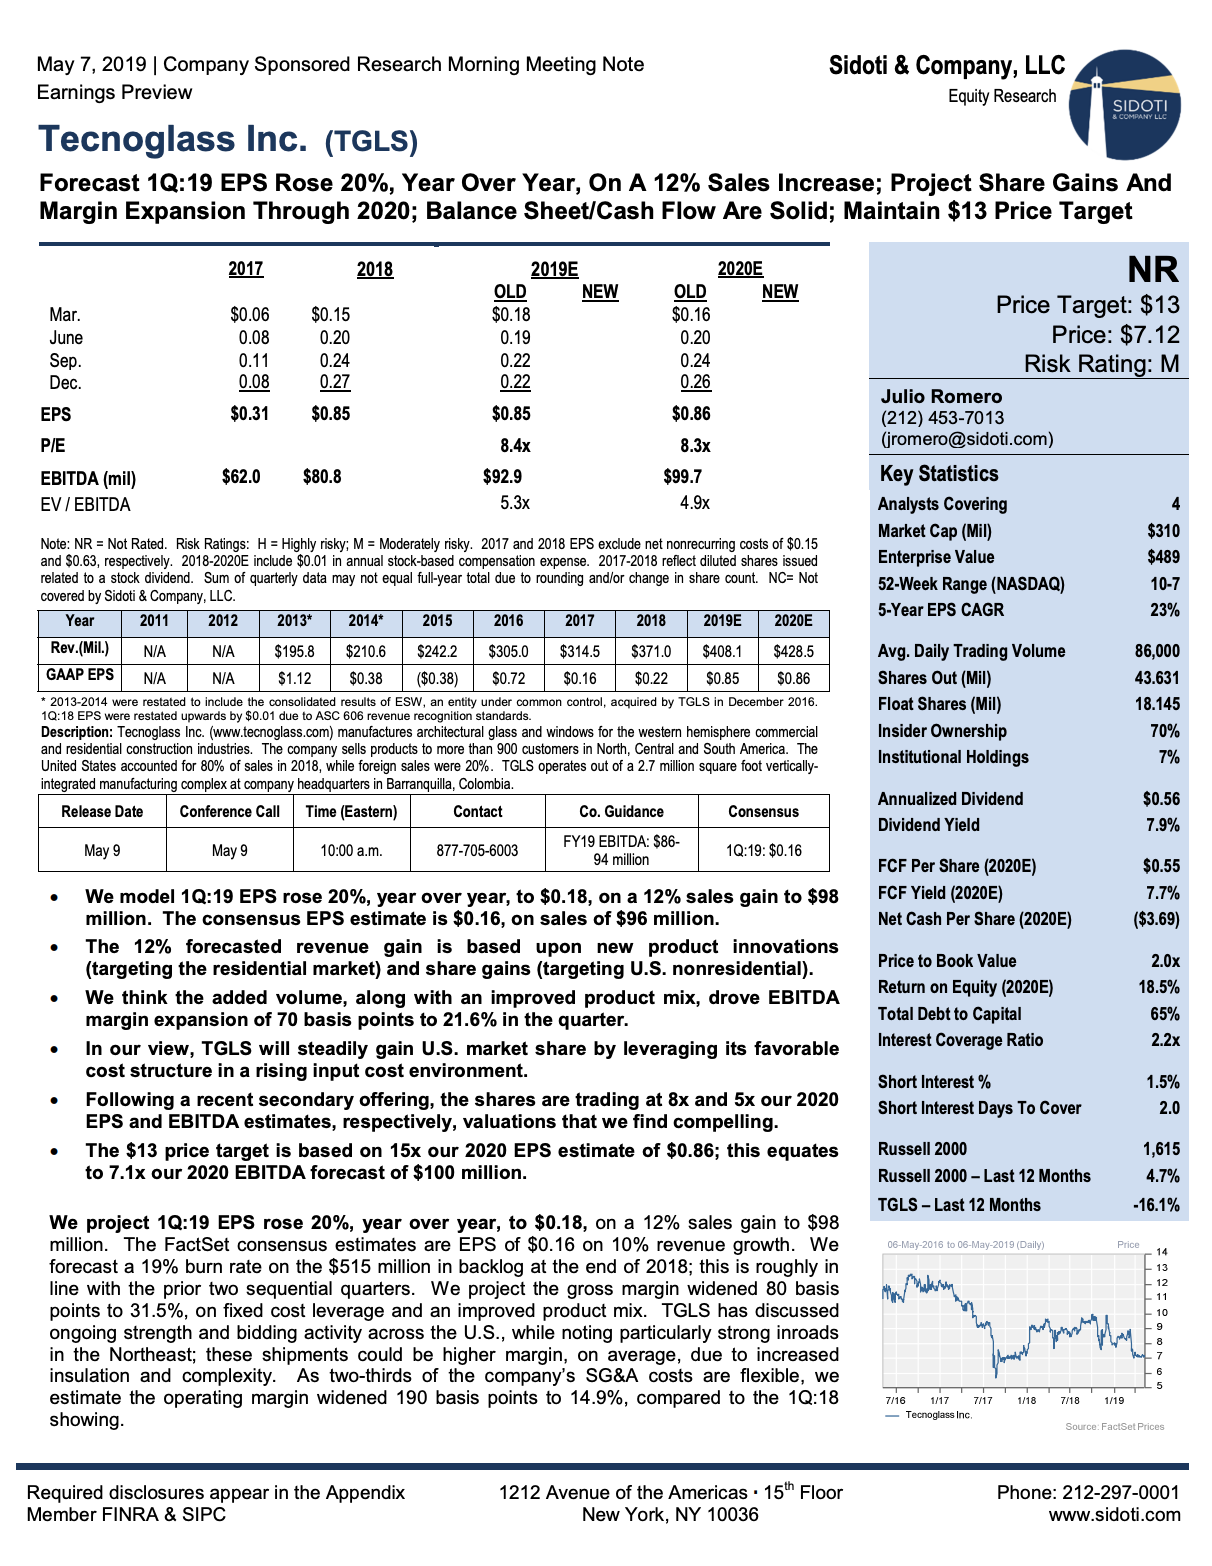 Earnings Preview: May 7, 2019